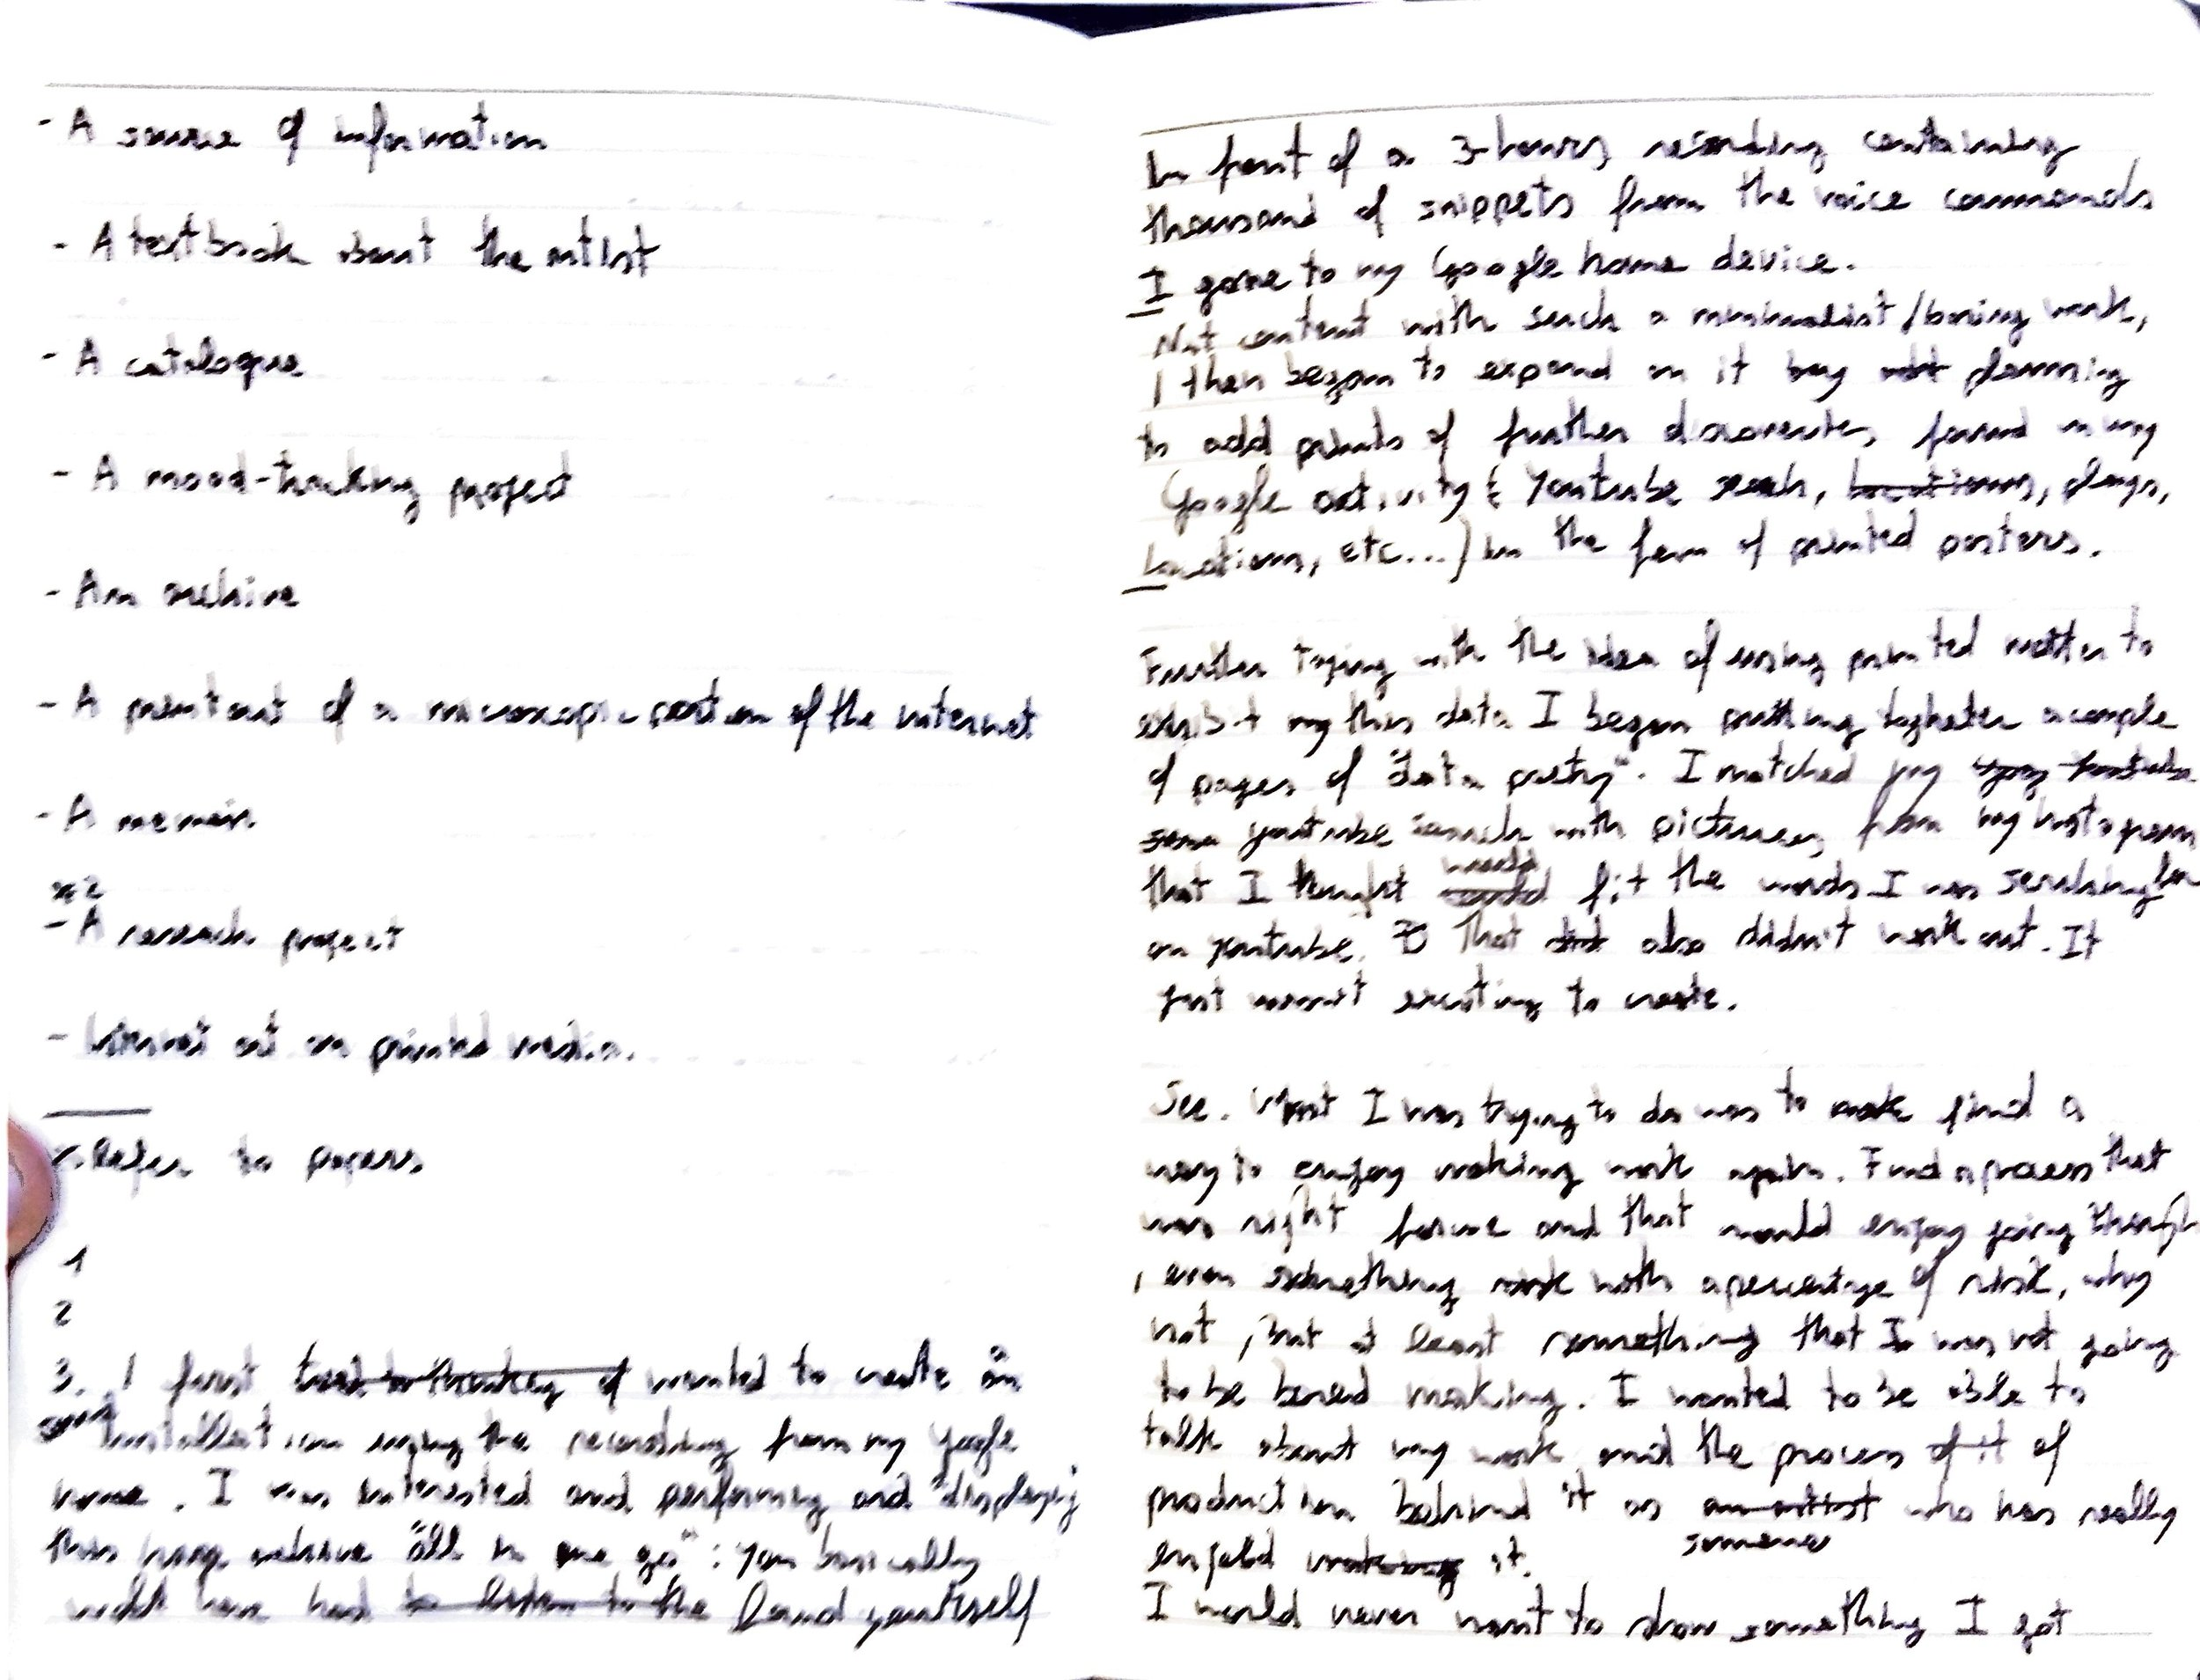 black and pink notebooks_Page_54_Image_0001.jpg